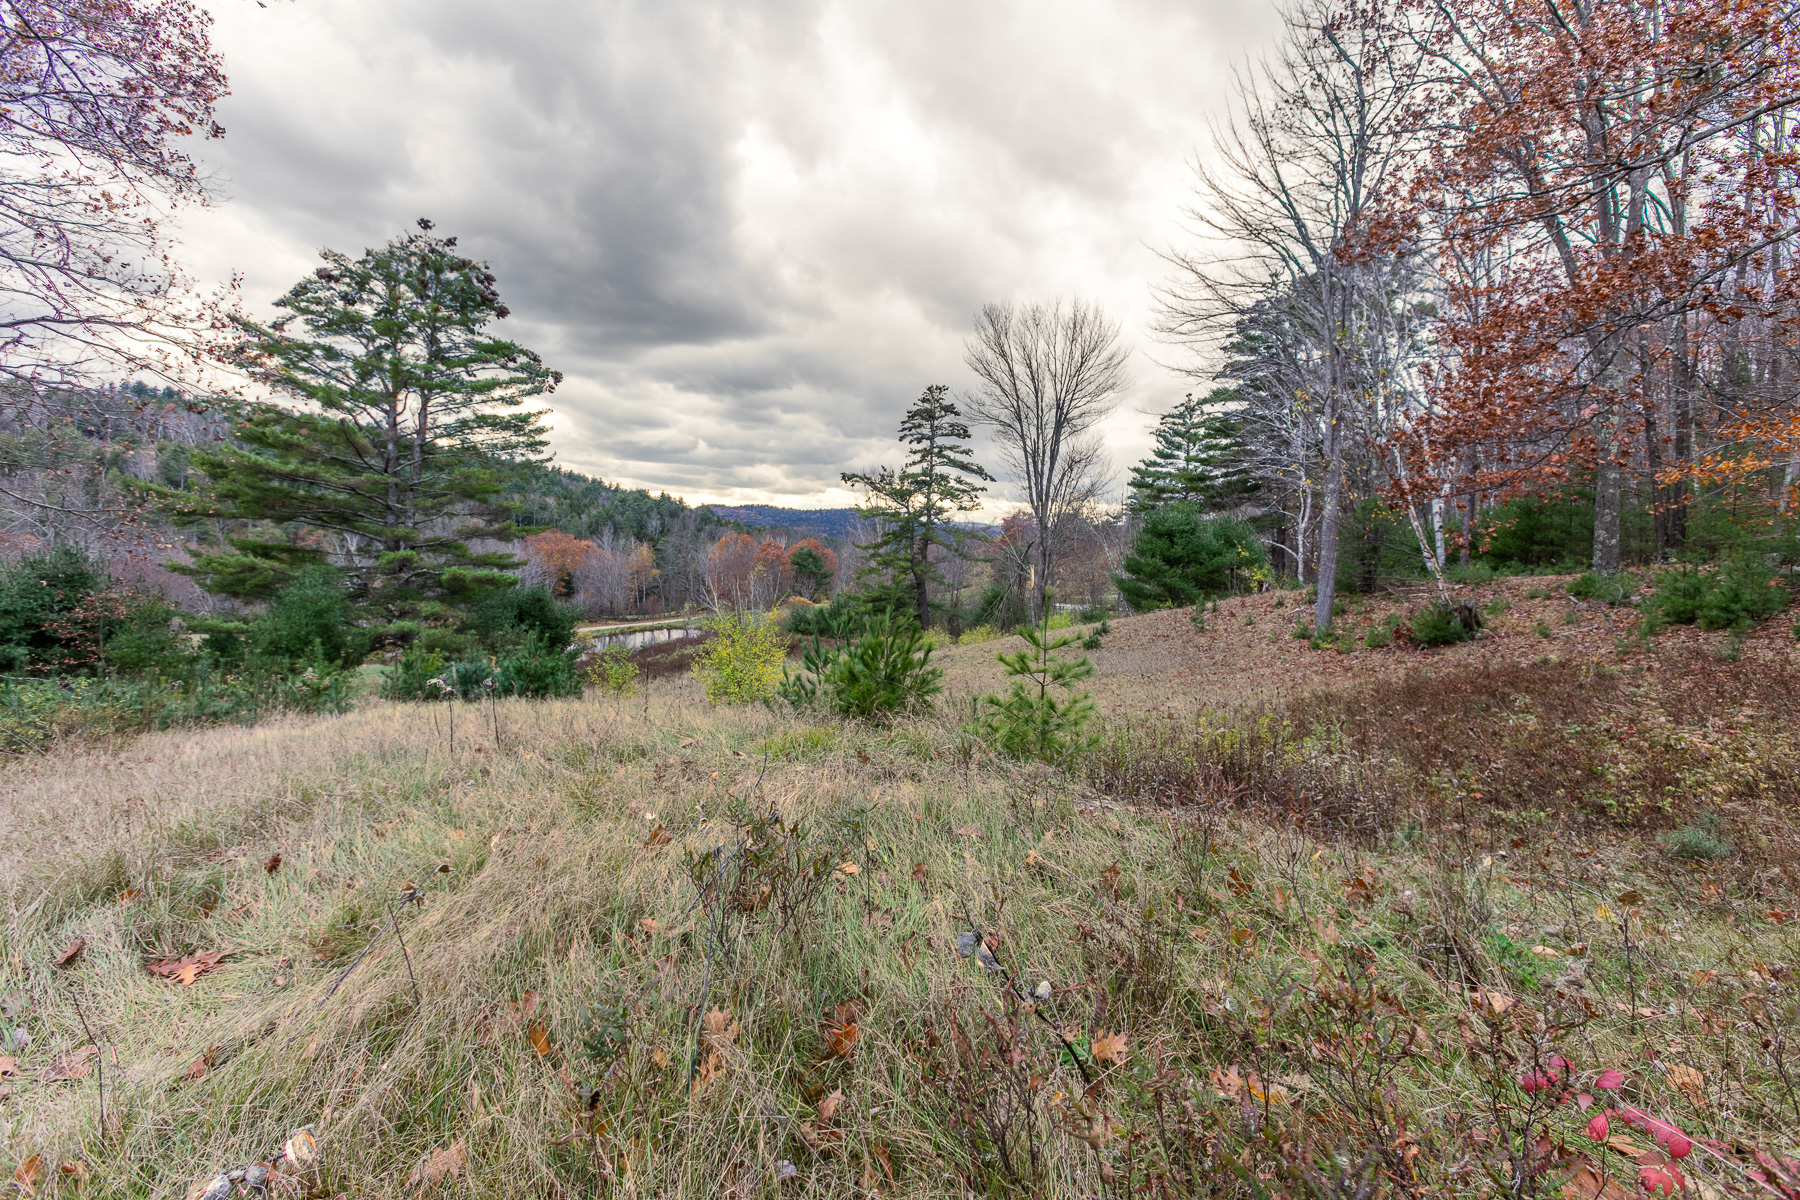 Land for Sale at 119 Whipple Hill Road, Lyme 119 Whipple Hill Rd Lyme, New Hampshire 03768 United States